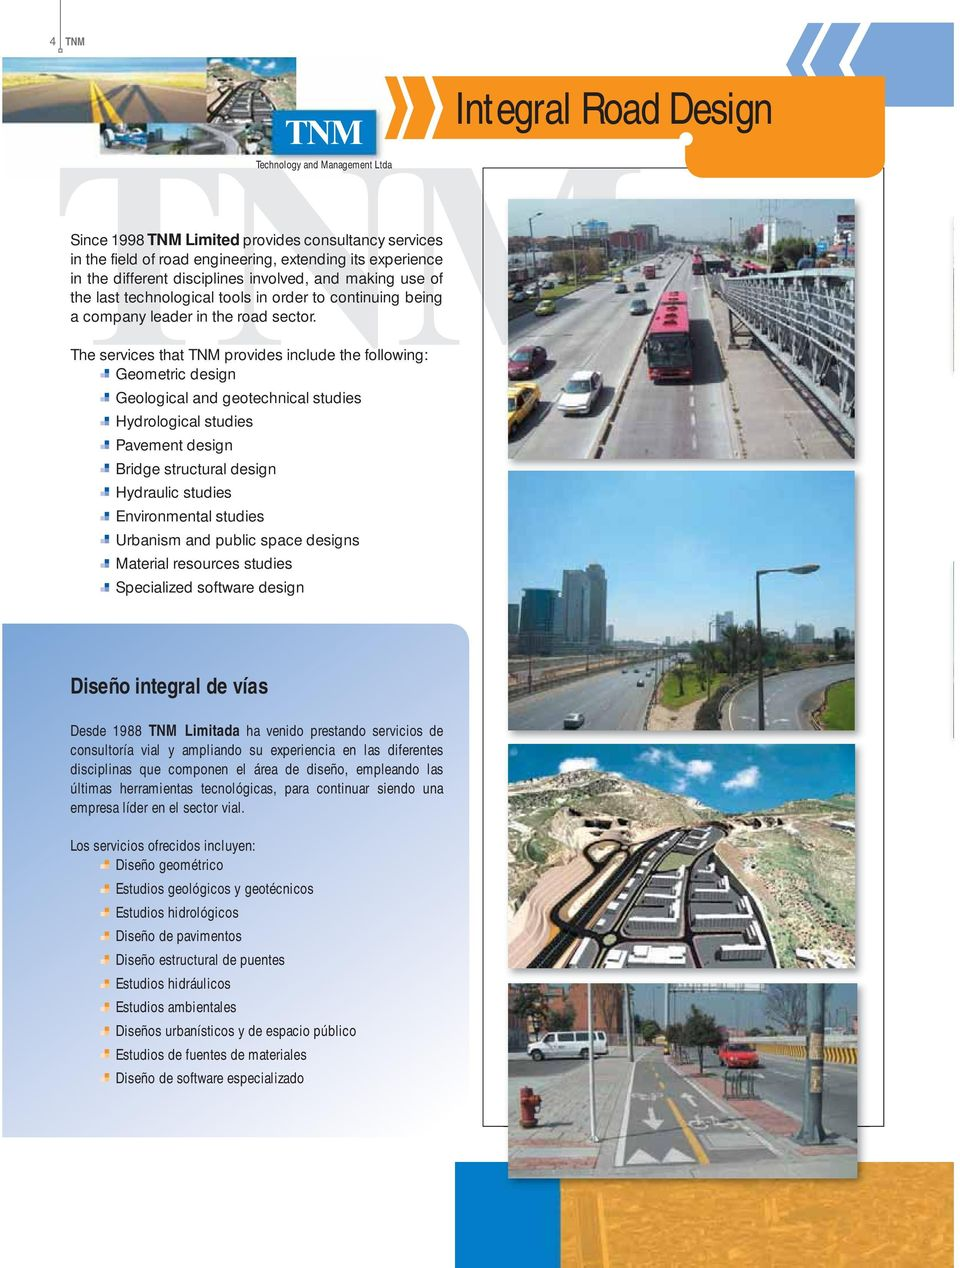 The services that TNM provides include the following: Geometric design Geological and geotechnical studies Hydrological studies Pavement design Bridge structural design Hydraulic studies